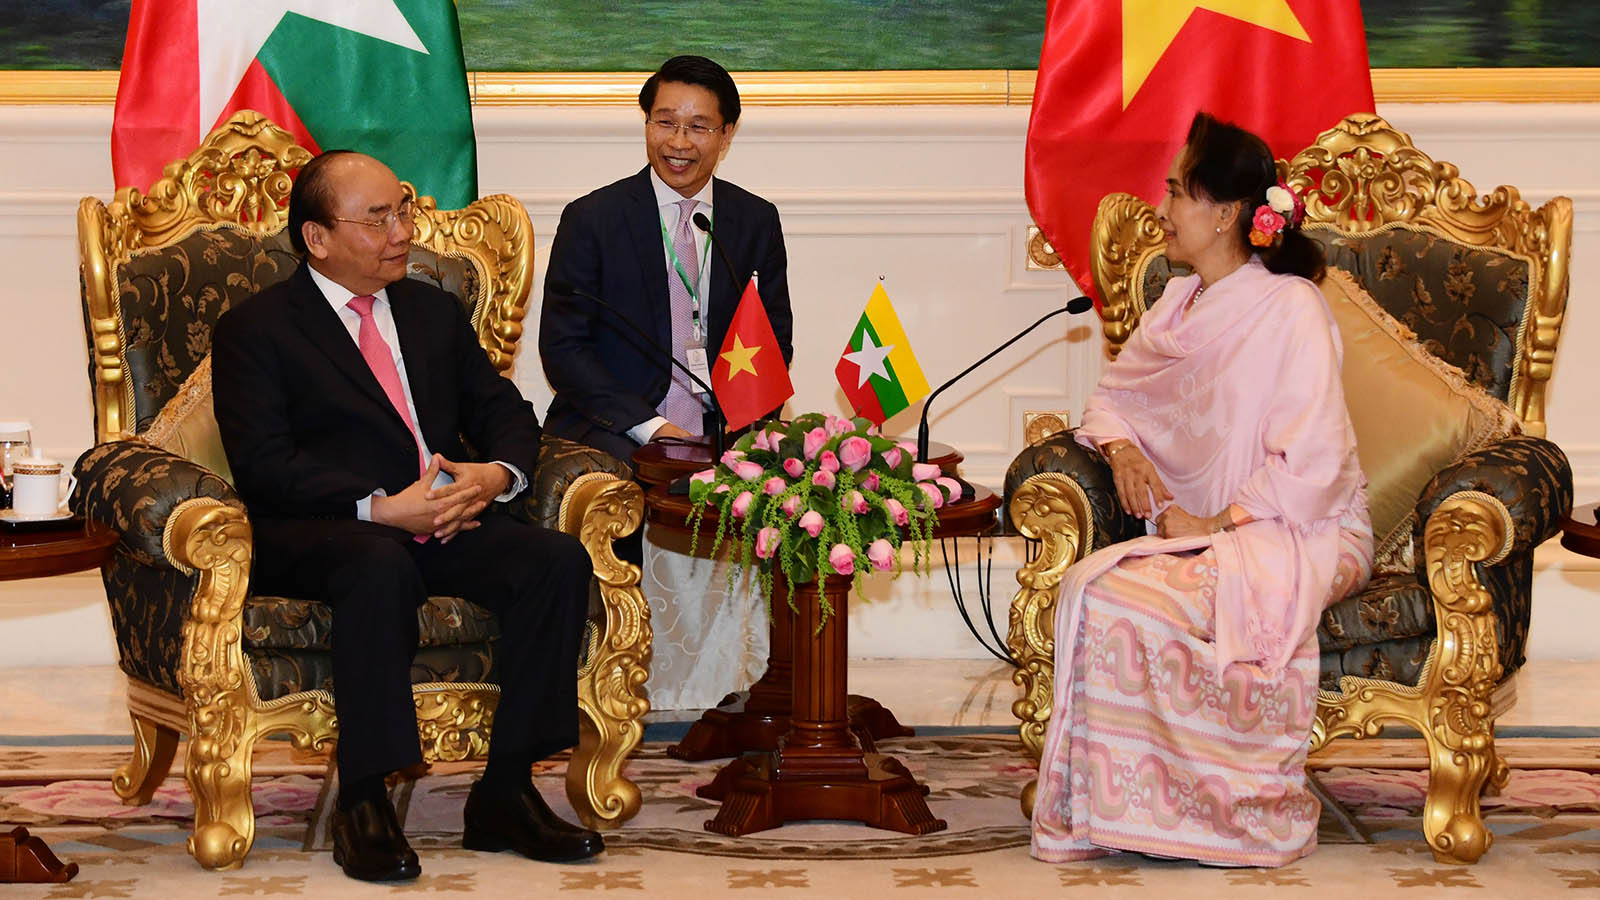 State Counsellor Daw Aung San Suu Kyi holds talk with Prime Minister Nguyen Xuan Phuc of the Socialist Republic of Viet Nam at the Presidential Palace in Nay Pyi Taw yesterday.Photo: MNA